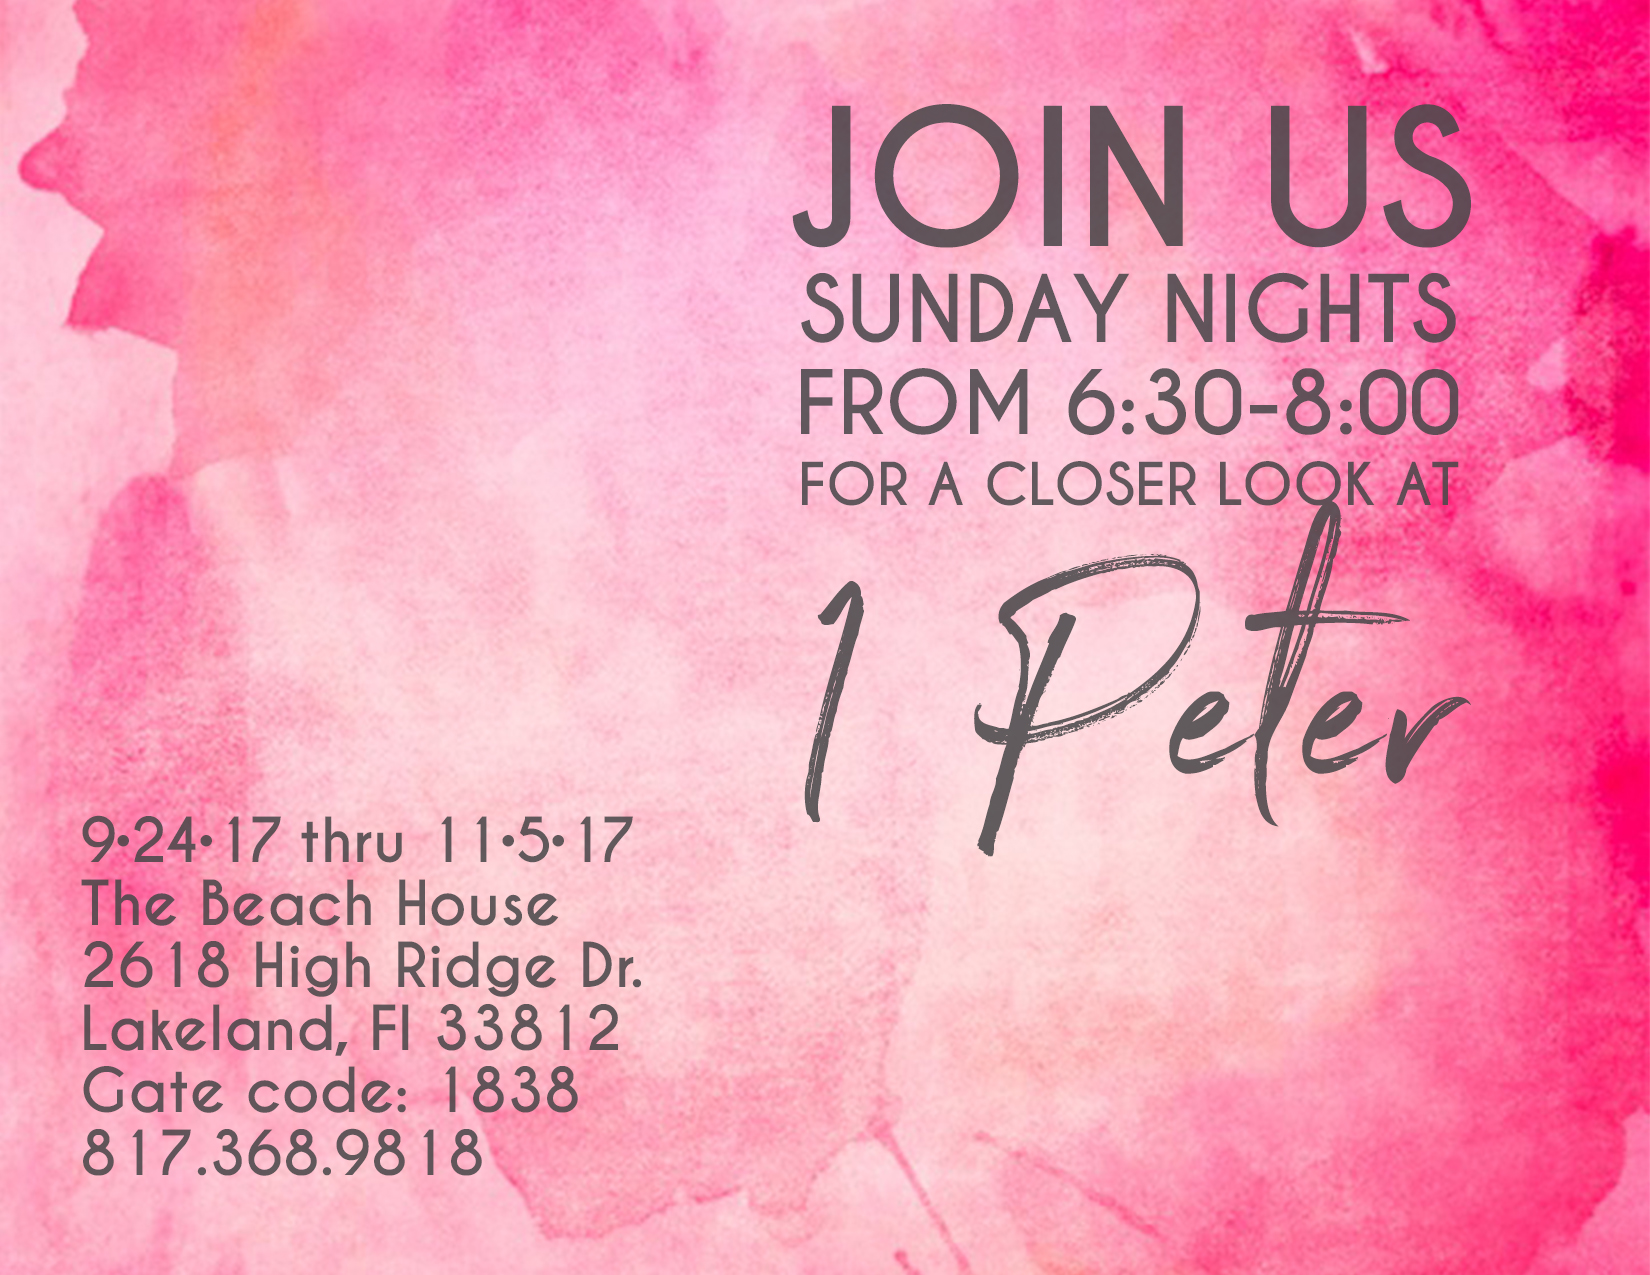 Here is the location and contact info for the high school girls Bible study!